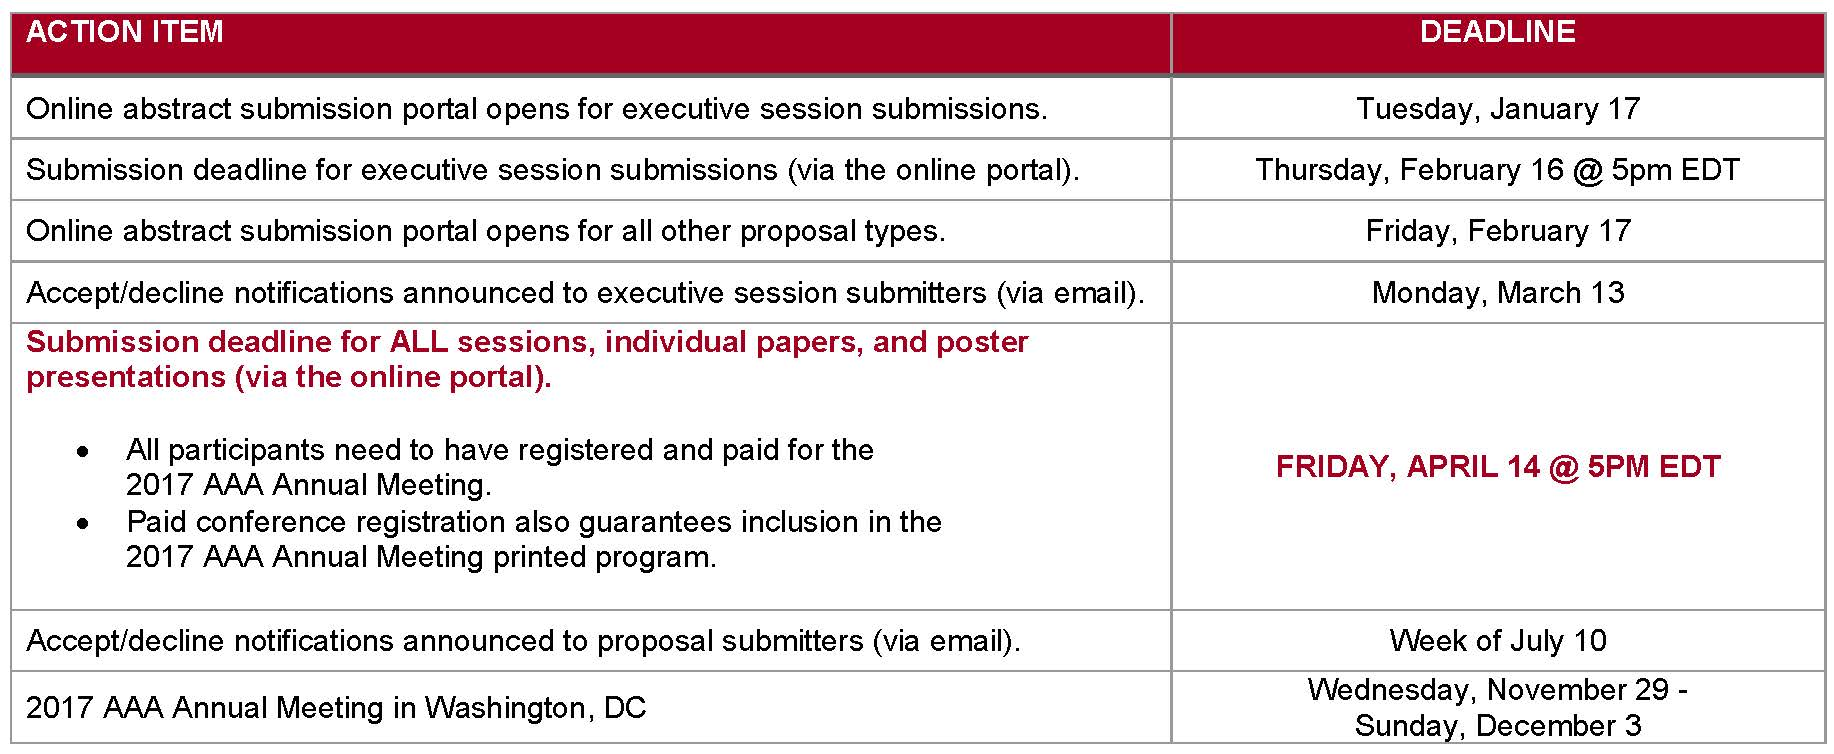 annual meeting call for papers attend events key 2017 aaa annual meeting cfp dates submission deadline for sessions individual papers and poster presentations extended to tuesday 18 at 5pm